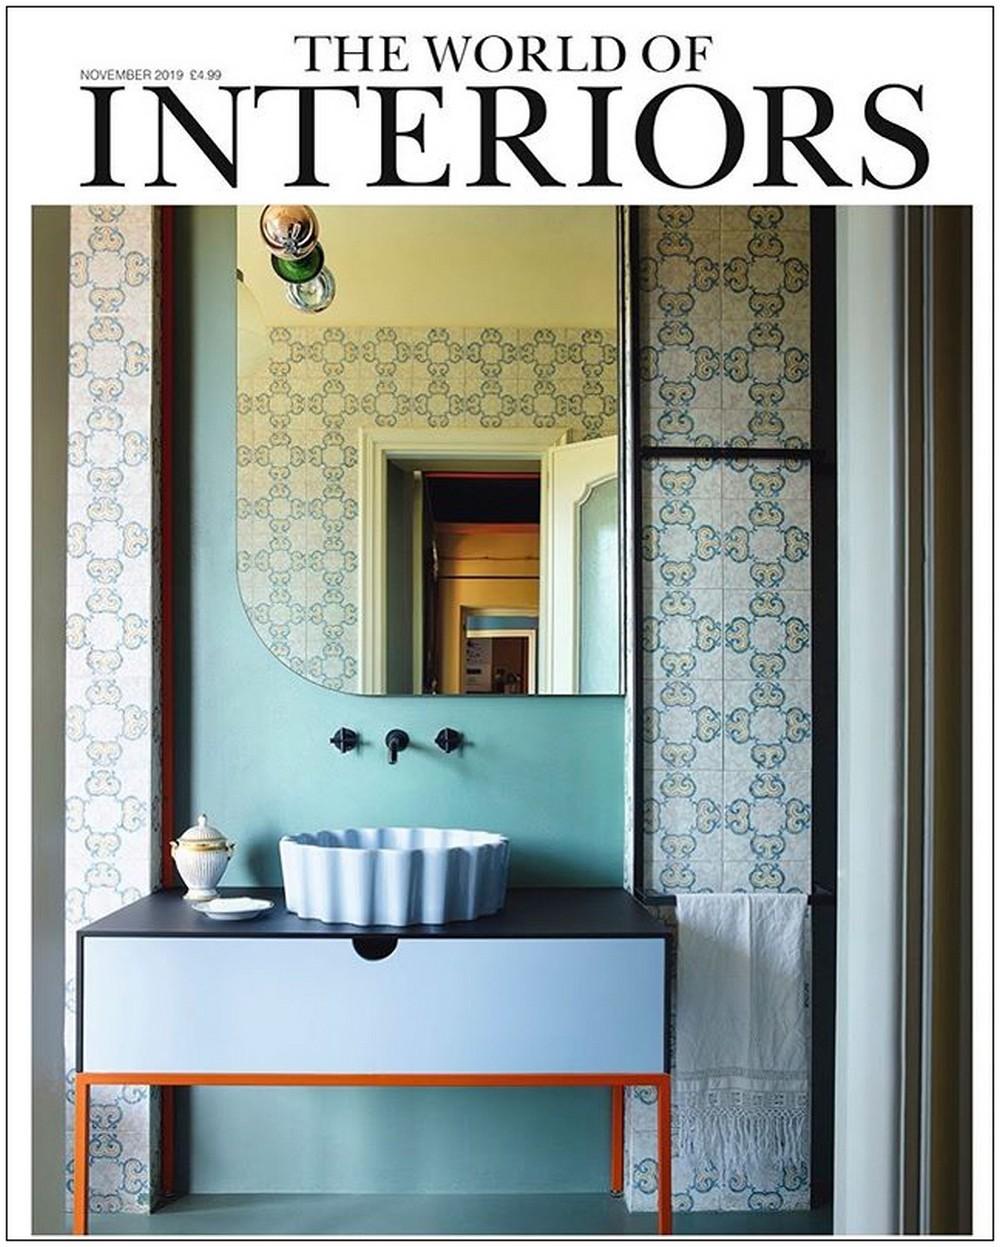 Top 7 Interior Design Magazines You Should Buy In November! interior design magazines Top 7 Interior Design Magazines You Should  Buy In November! Top 7 Interior Design Magazines You Should Buy In November